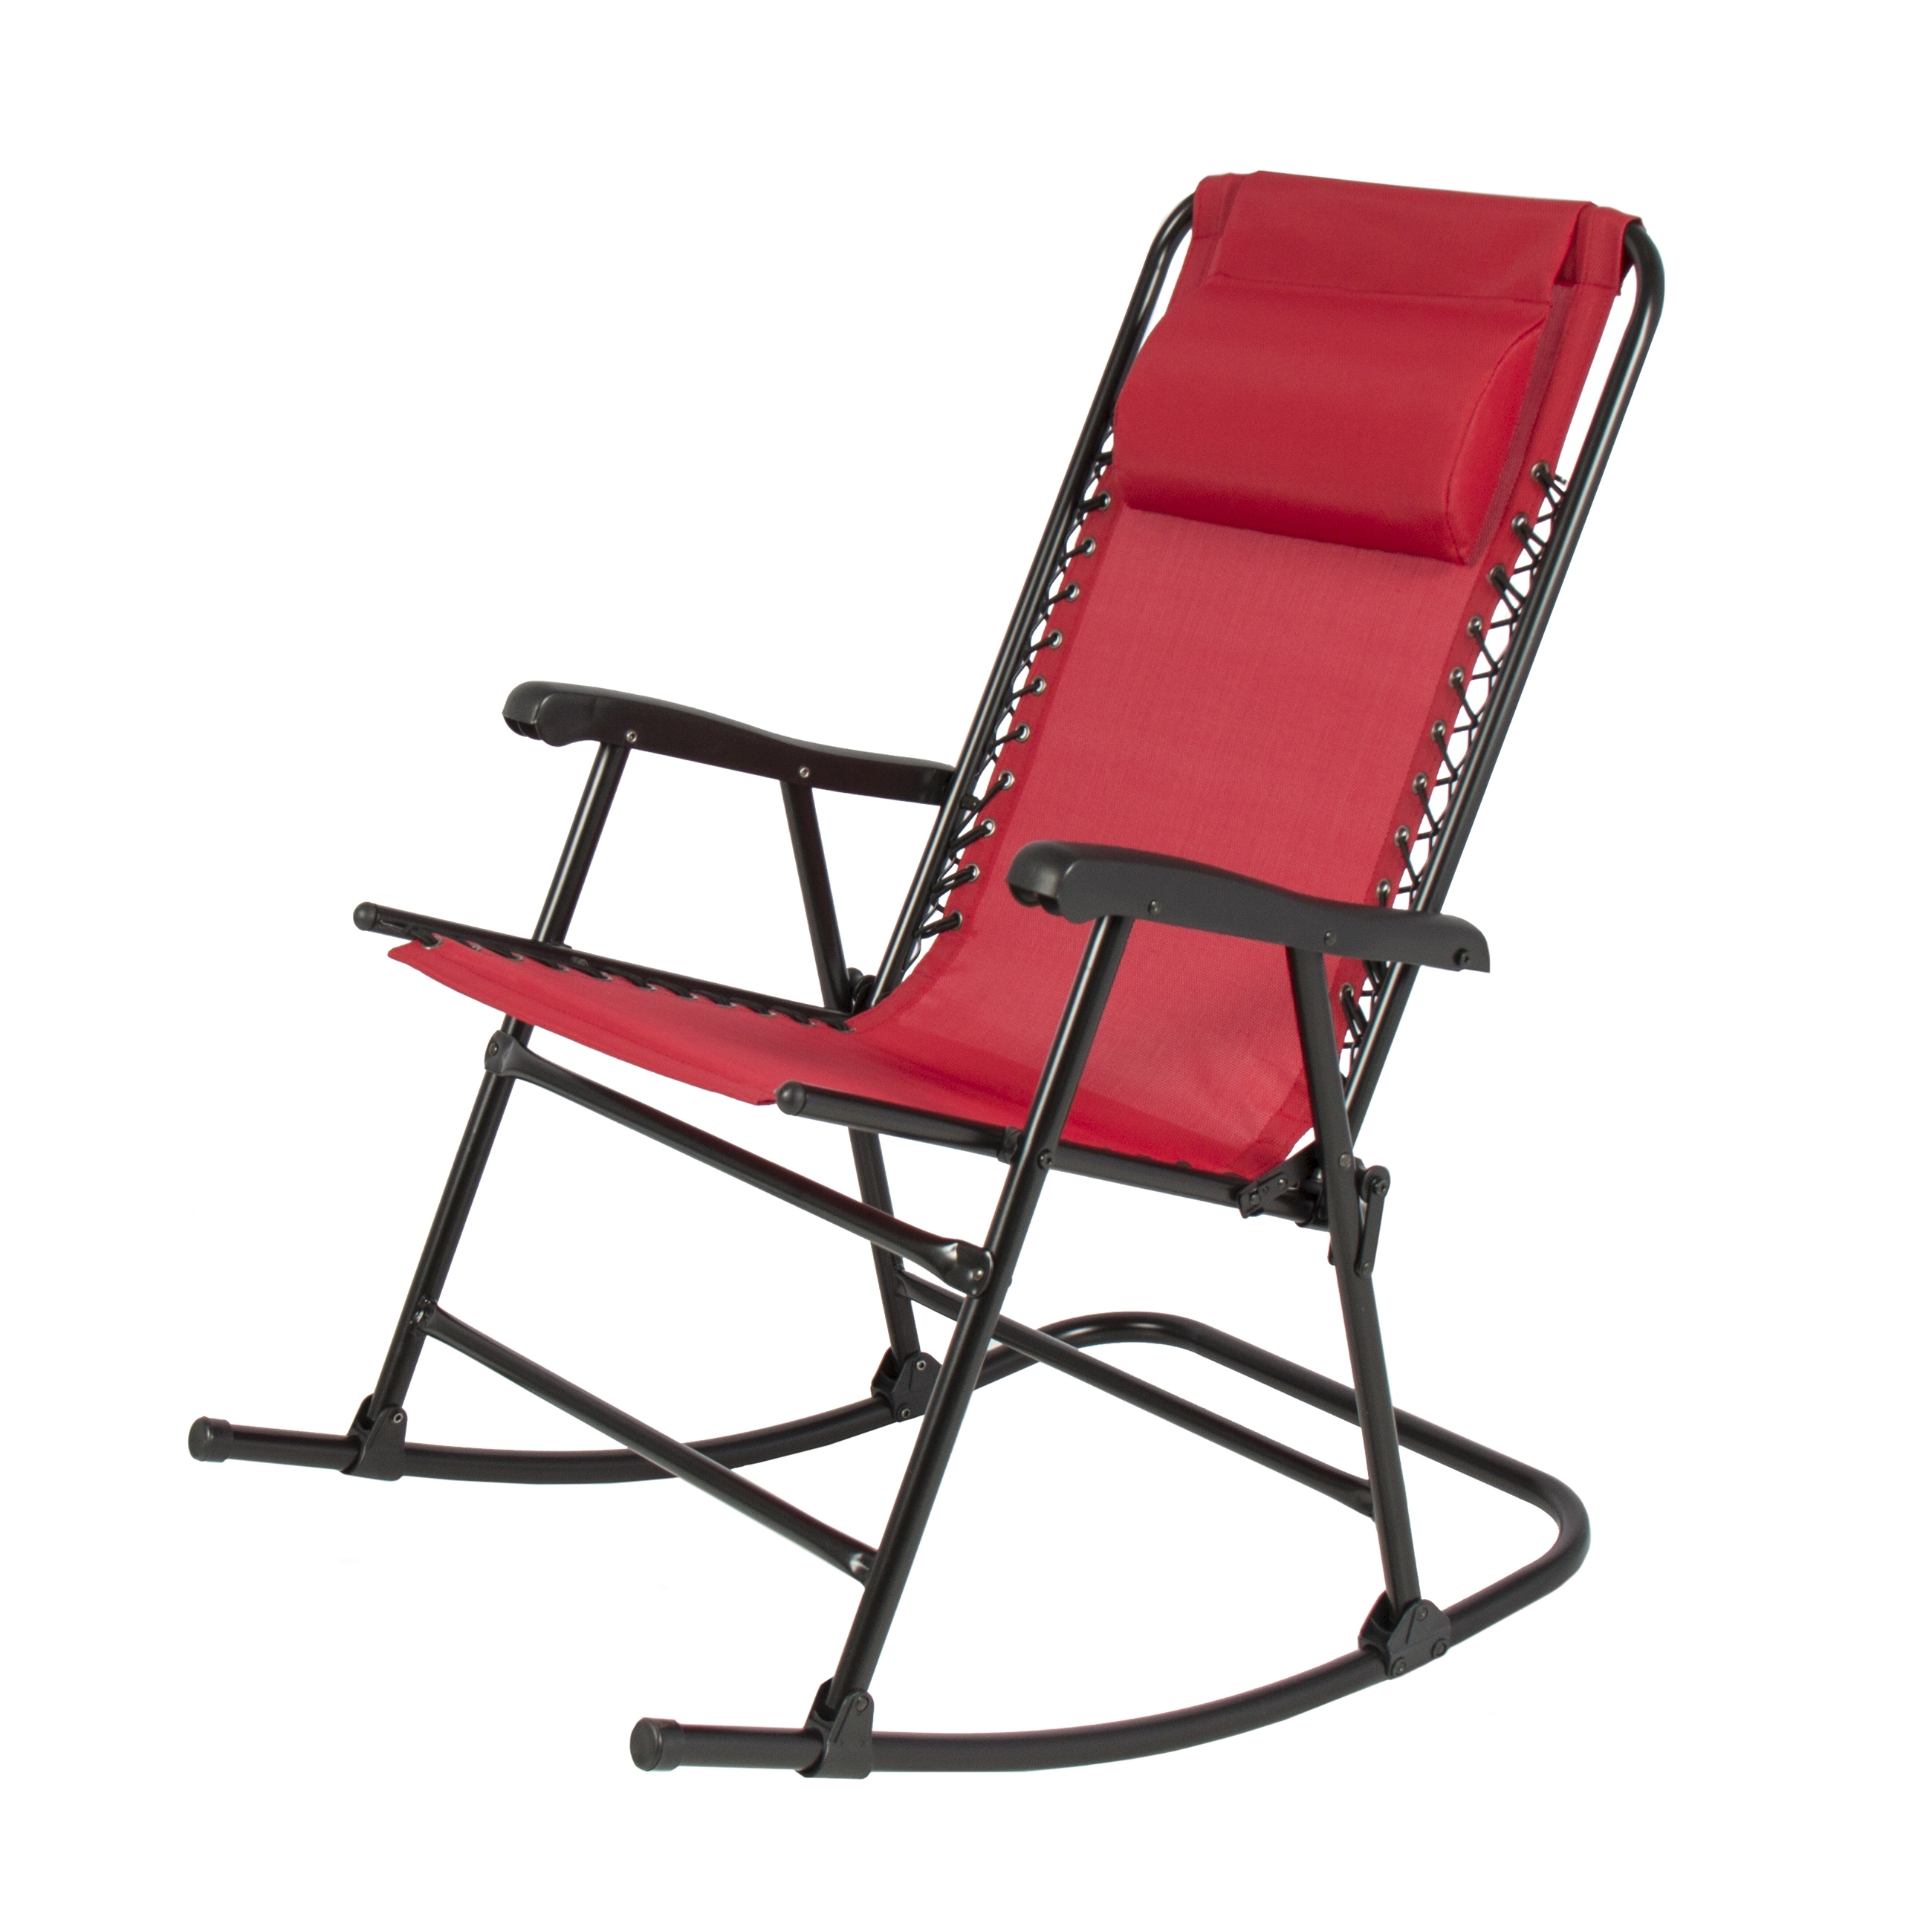 Folding Rocking Chairs Within Preferred Amazing Of Rocking Patio Chairs Folding Rocking Chair Foldable (View 11 of 15)